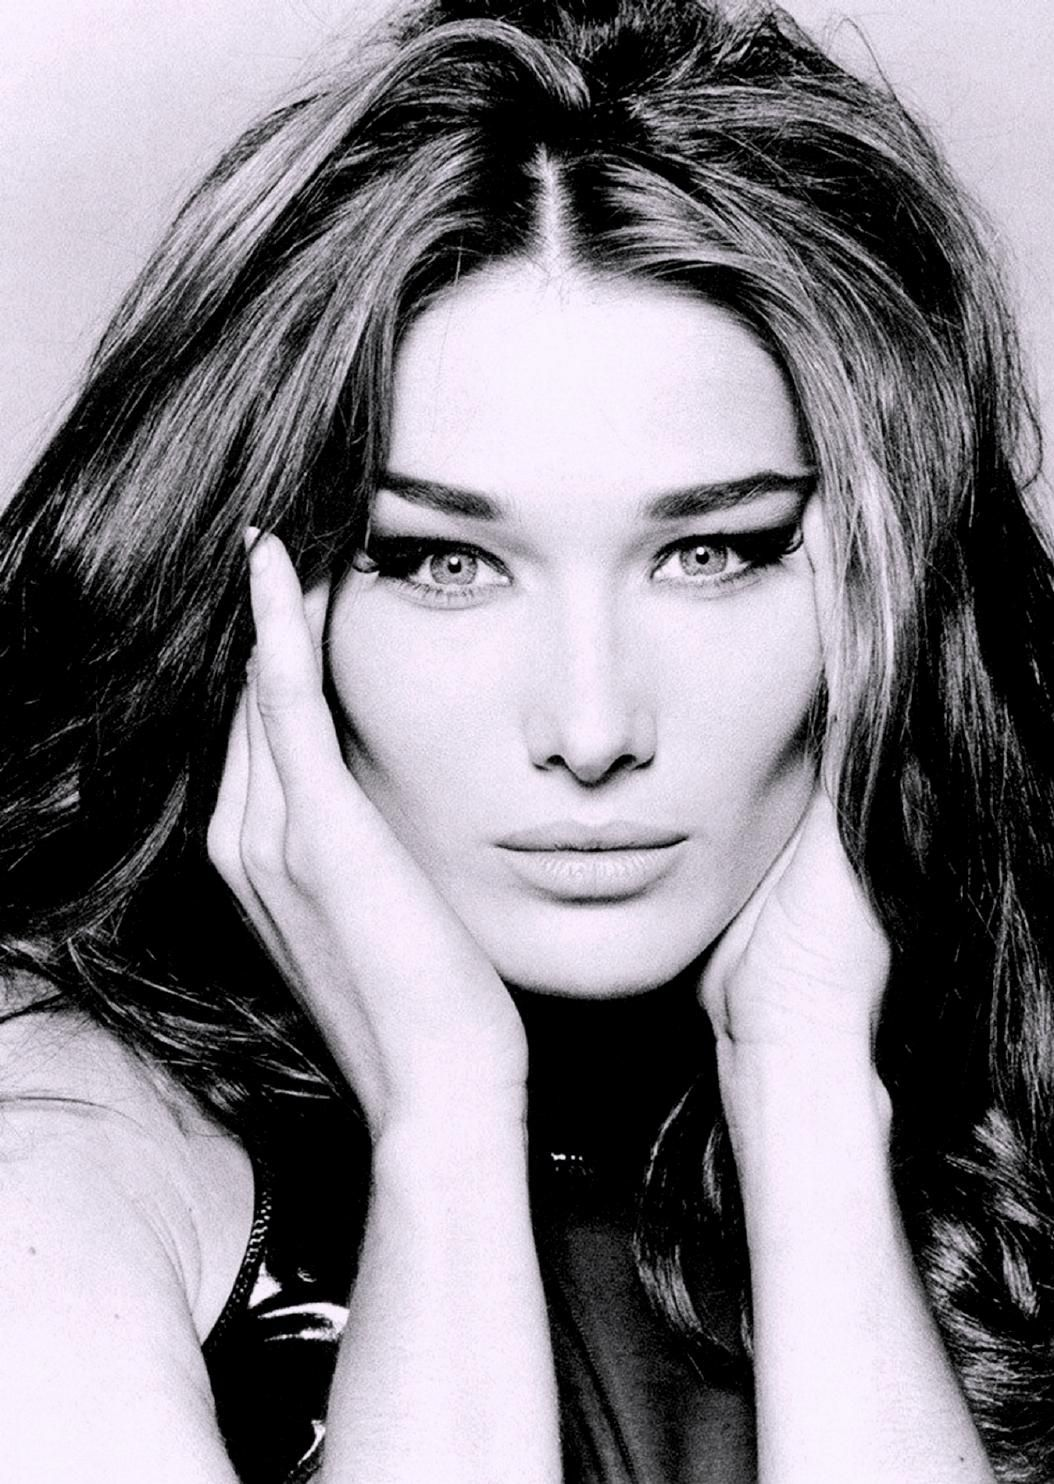 carla bruni by Dany Rojo#supermodel #fashionphotography #supermodelsofthe90s